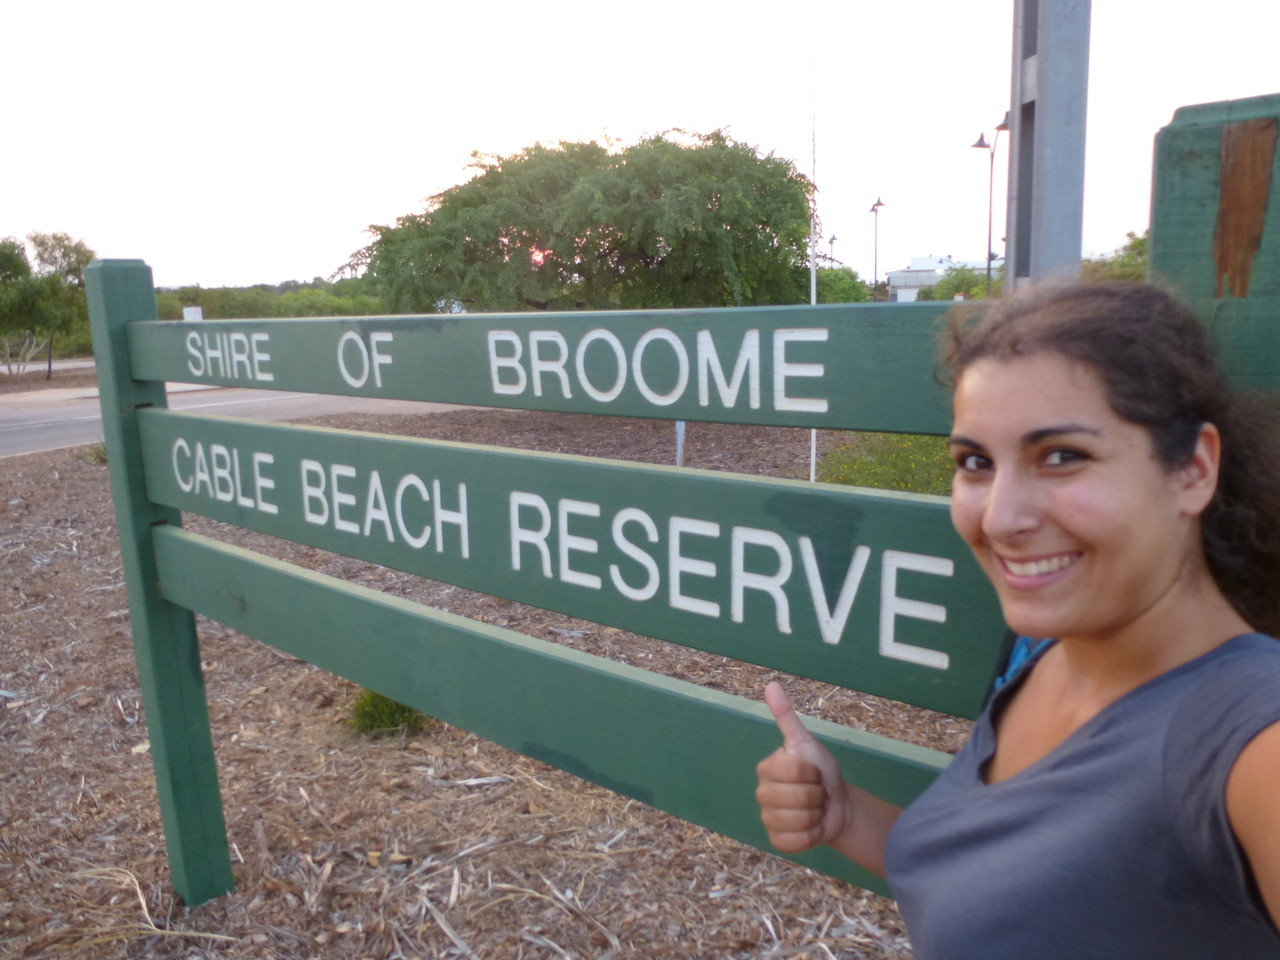 arrived in Broome